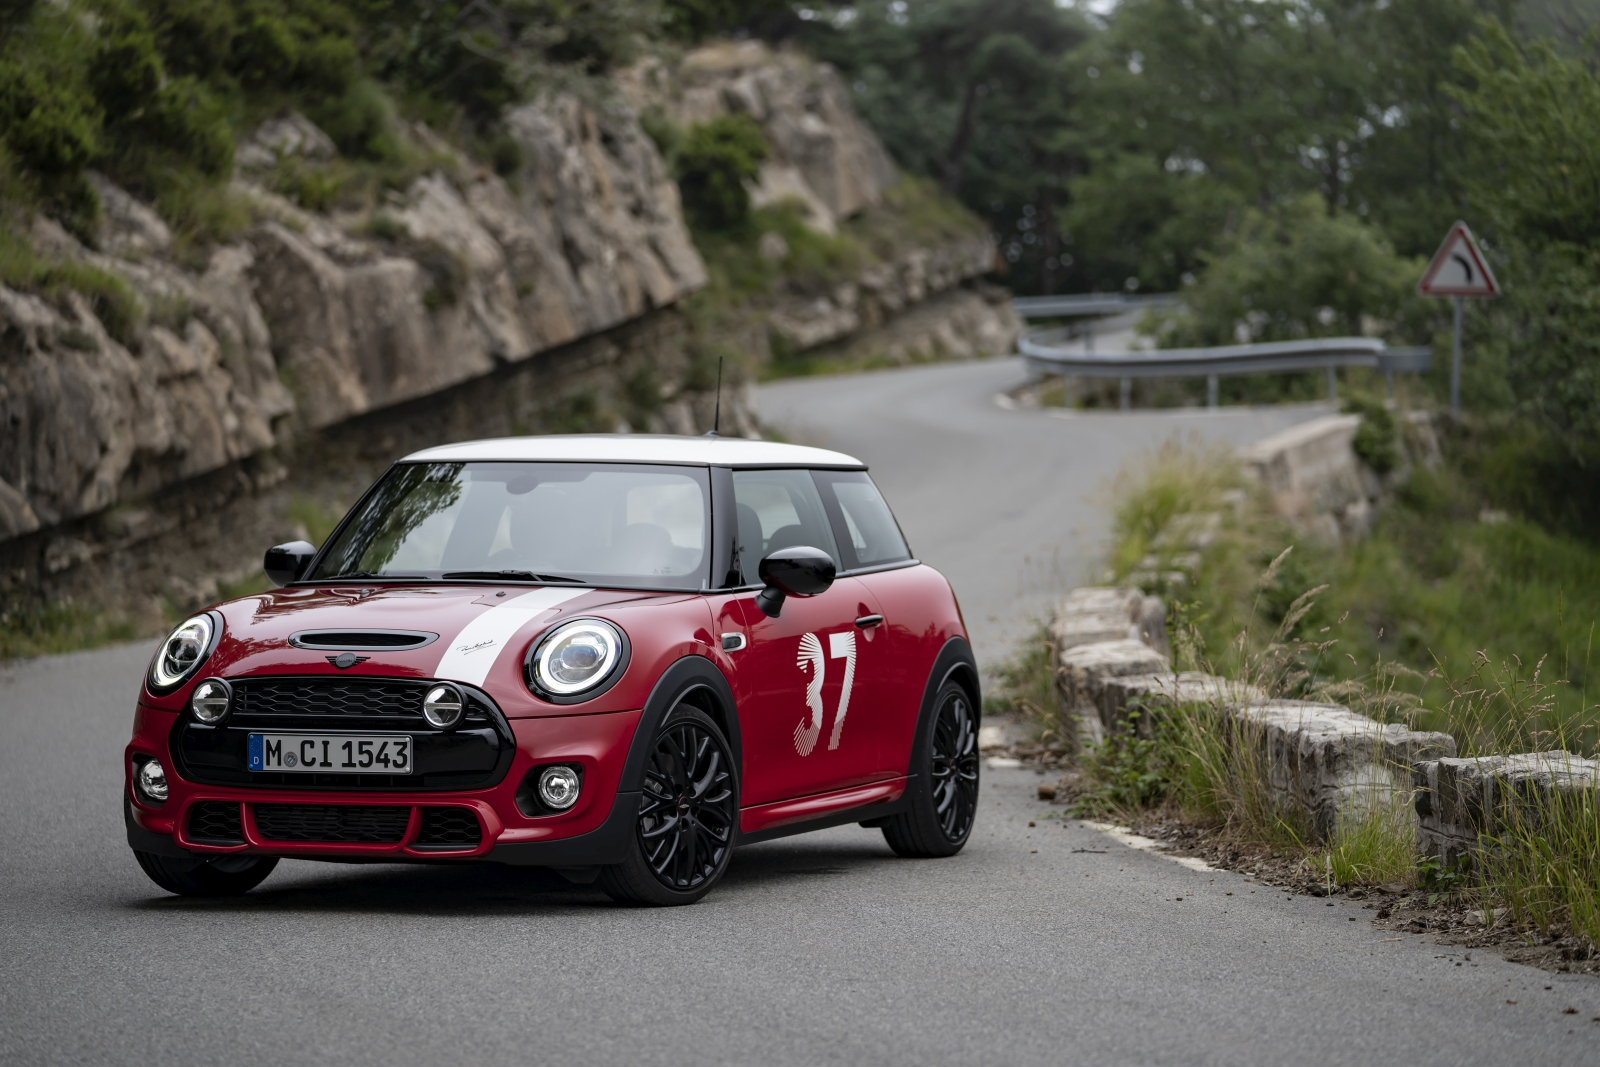 MINI Cooper S Paddy Hopkirk Edition